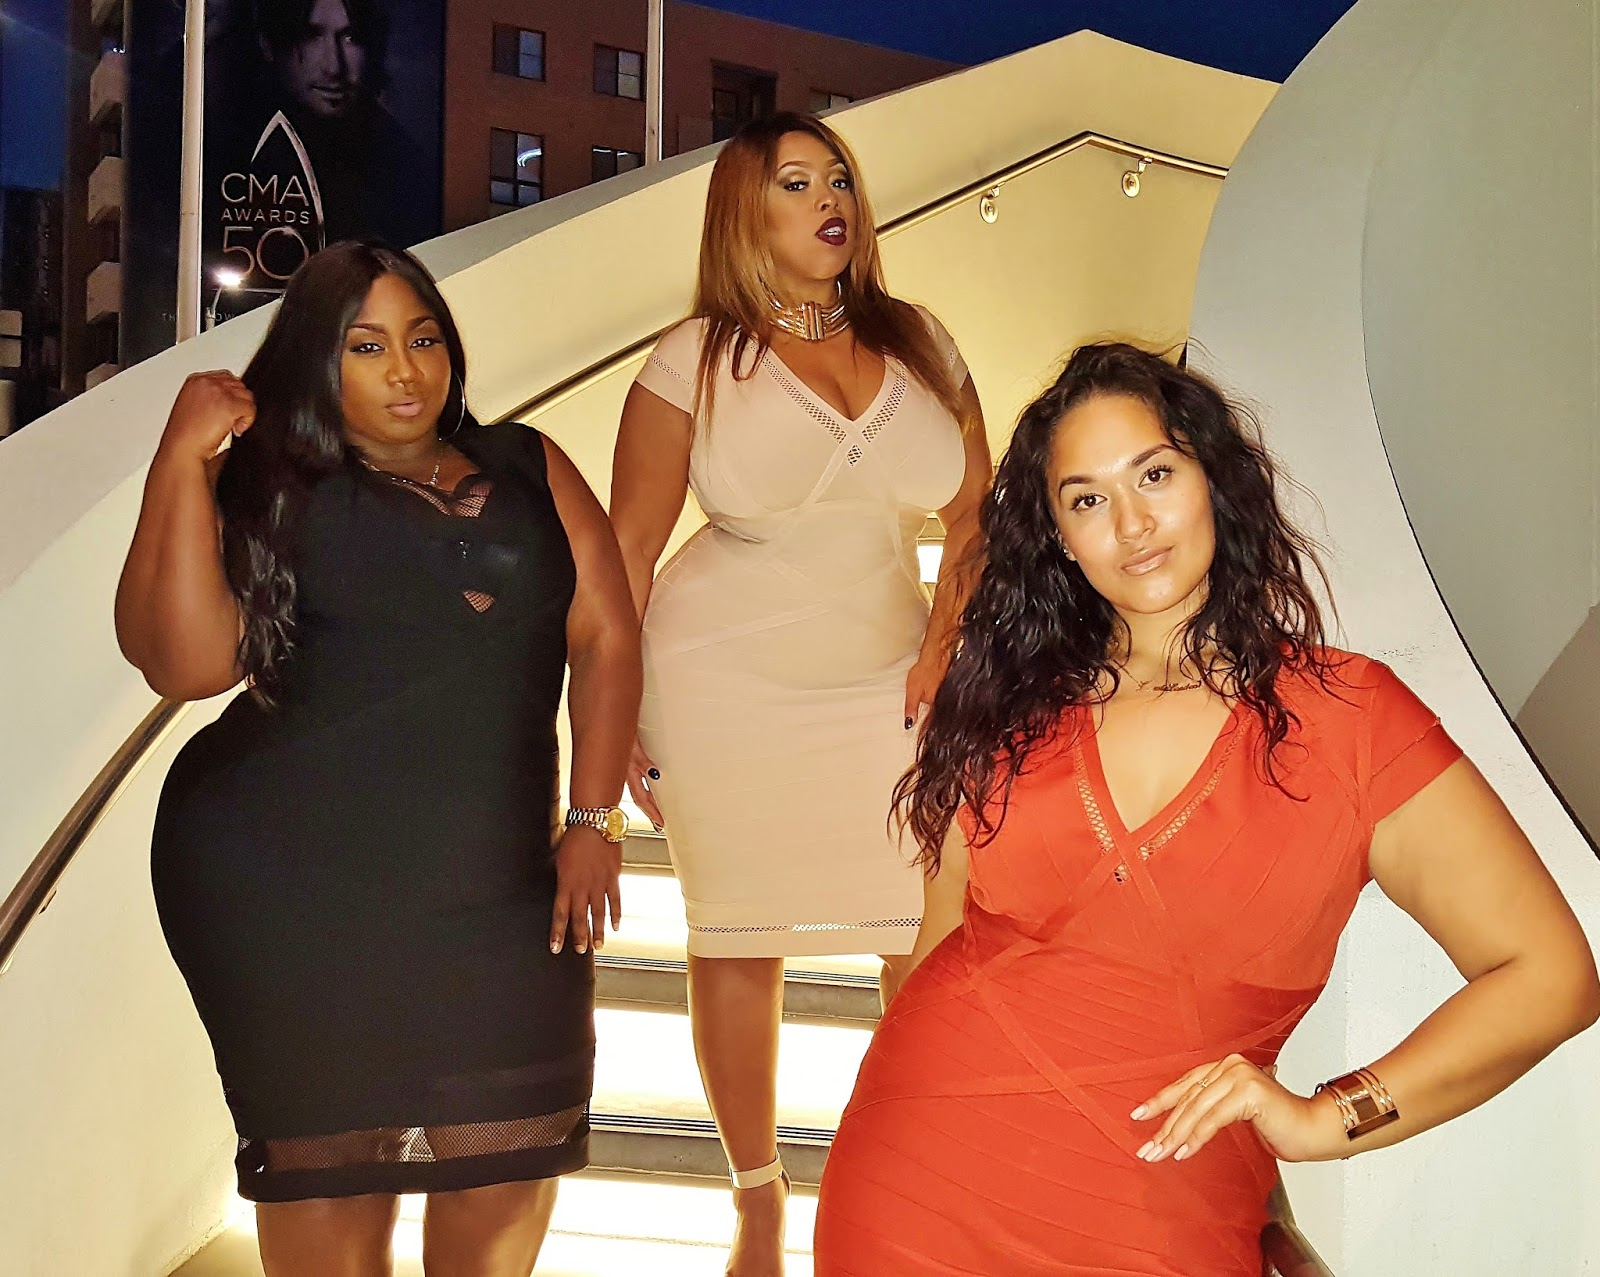 aa3a68e60b To say I love these dresses is an understatement! I felt like a million  bucks and my girls shut it down! To check out the full range of bodycon  options be ...